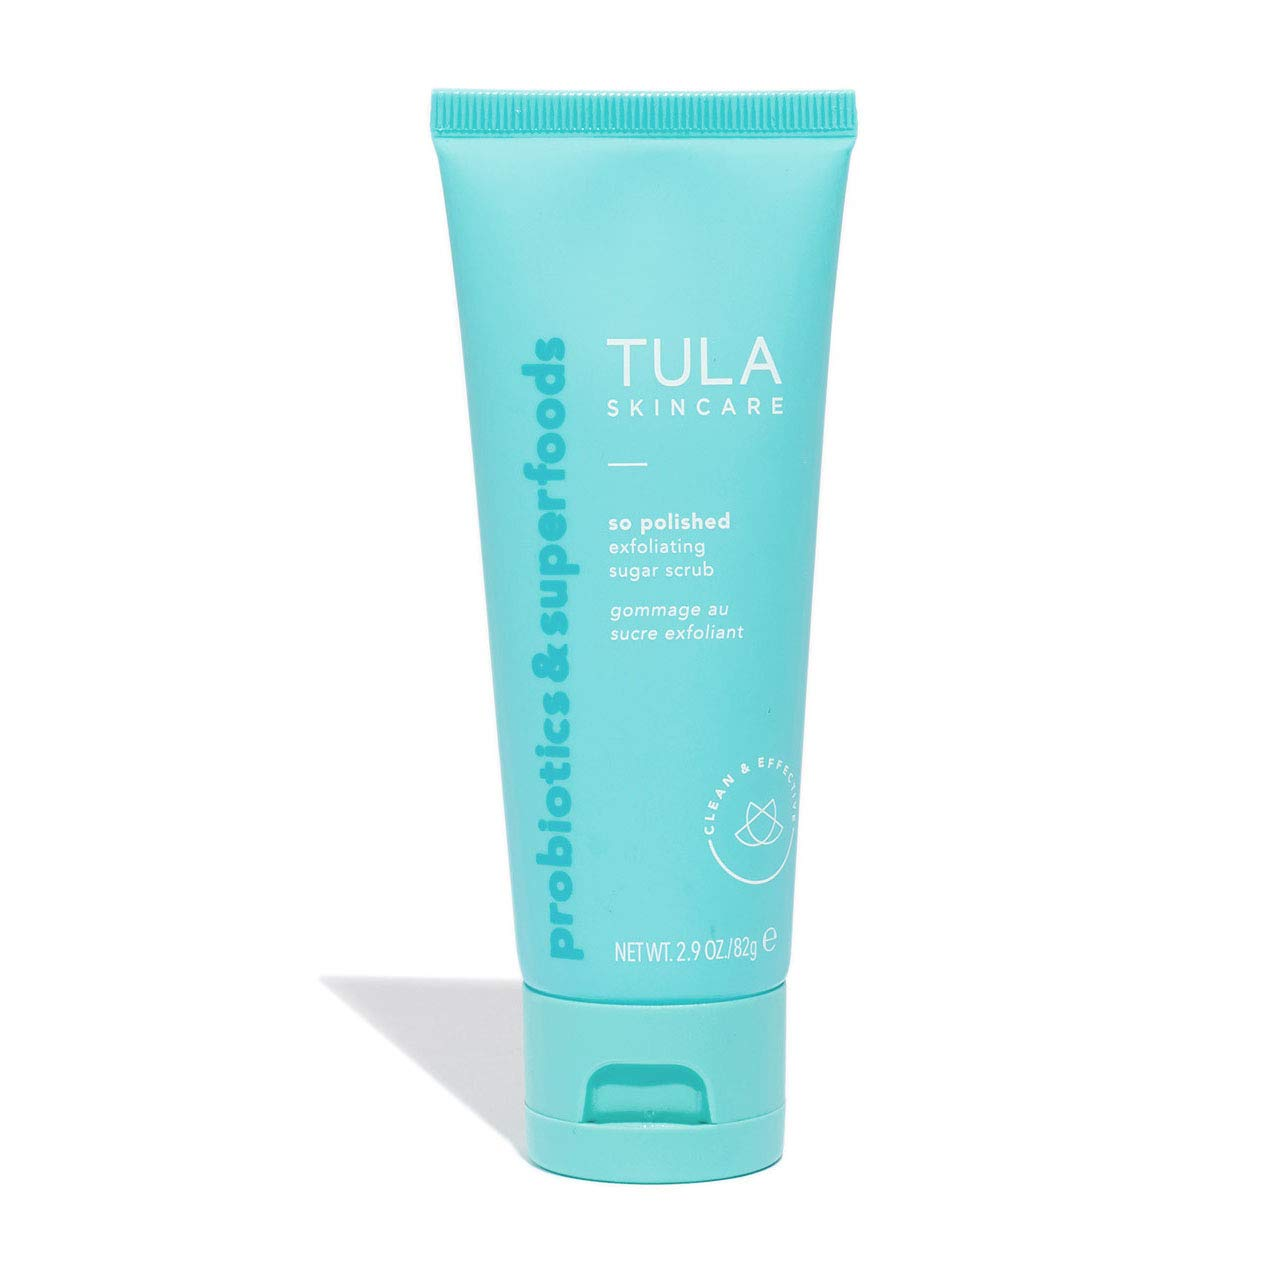 TULA Probiotic Skin Care So Polished Exfoliating Sugar Scrub | Face Scrub, Gently Exfoliates with Sugar, Papaya, and Probiotics for a Softer and Radiant-Looking Complexion | 2.9 oz. by TULA